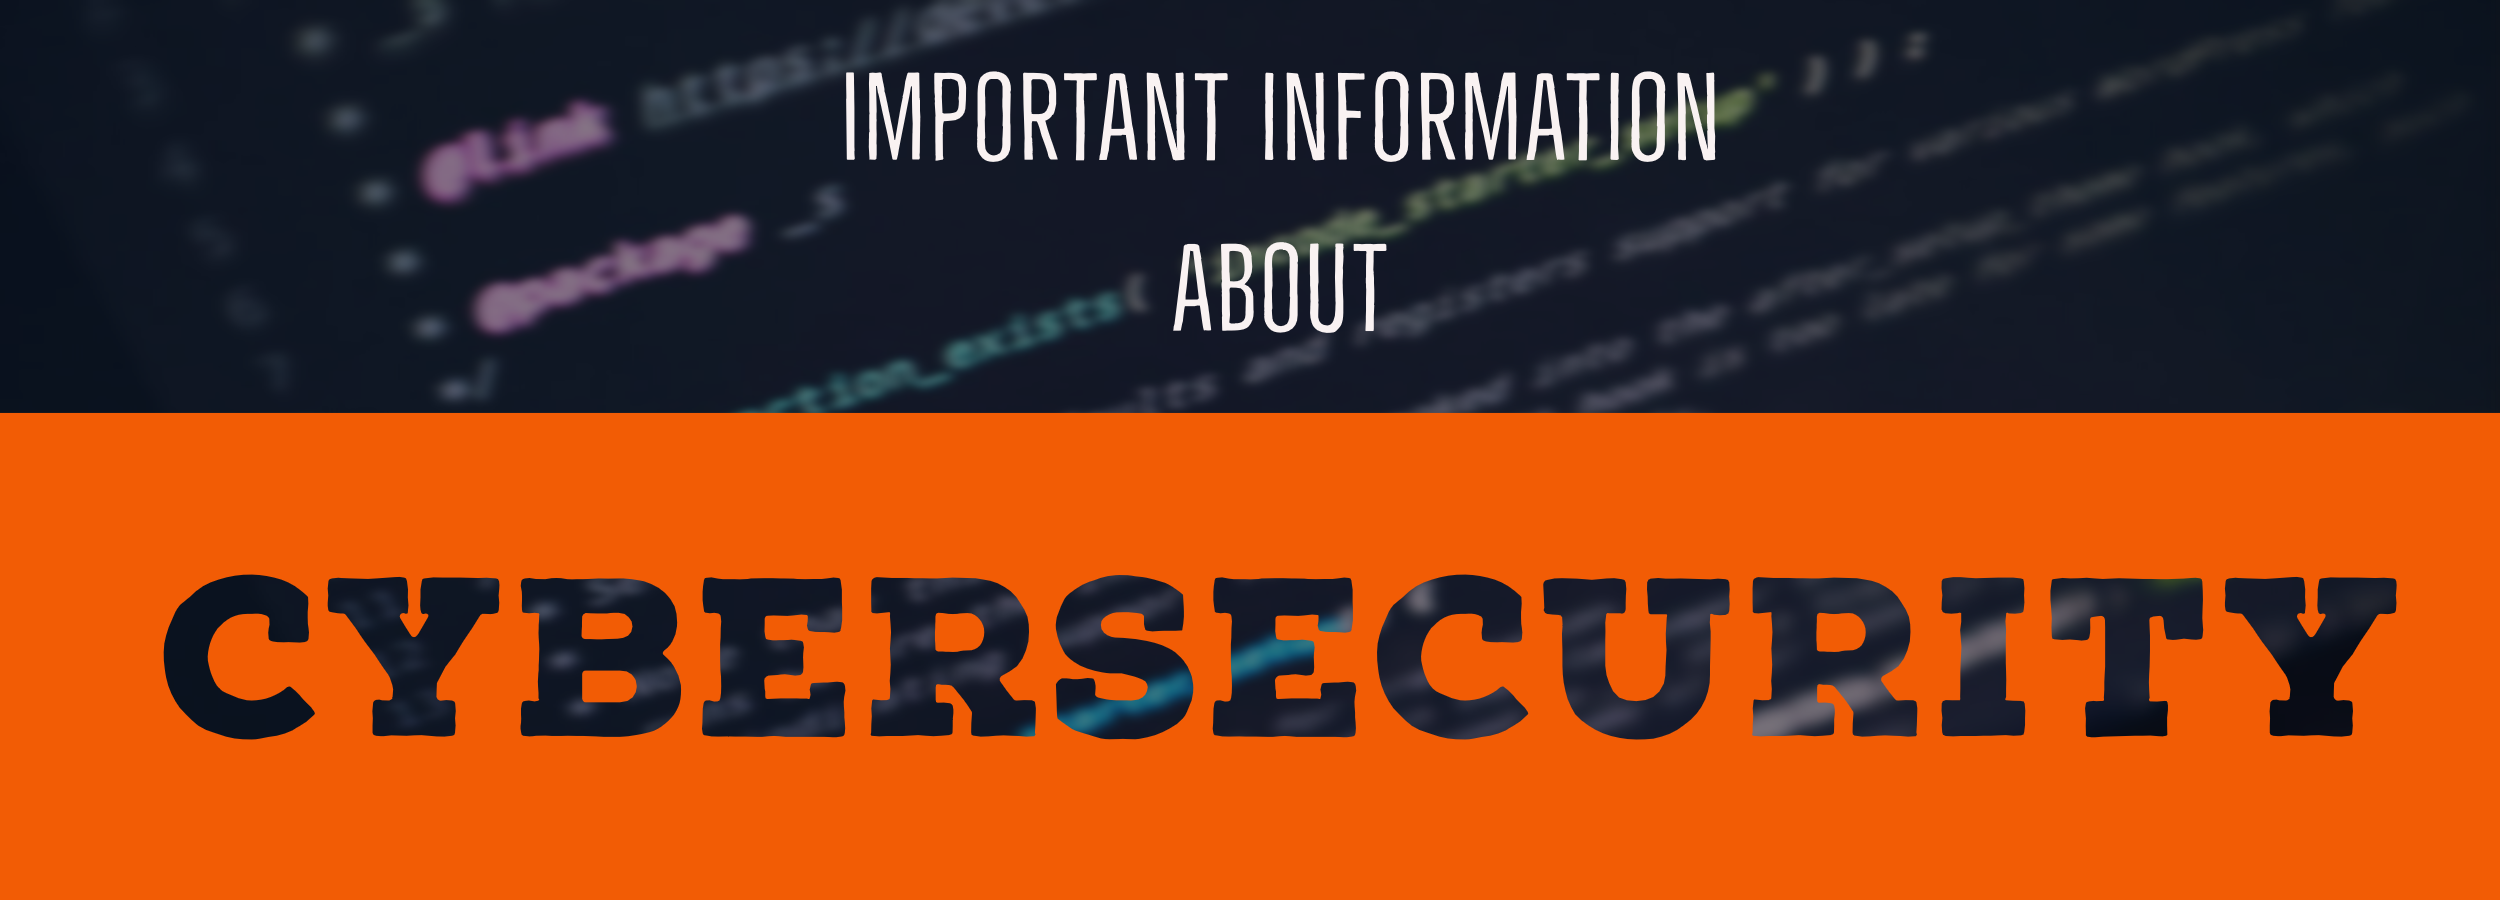 Important information about cybersecurity